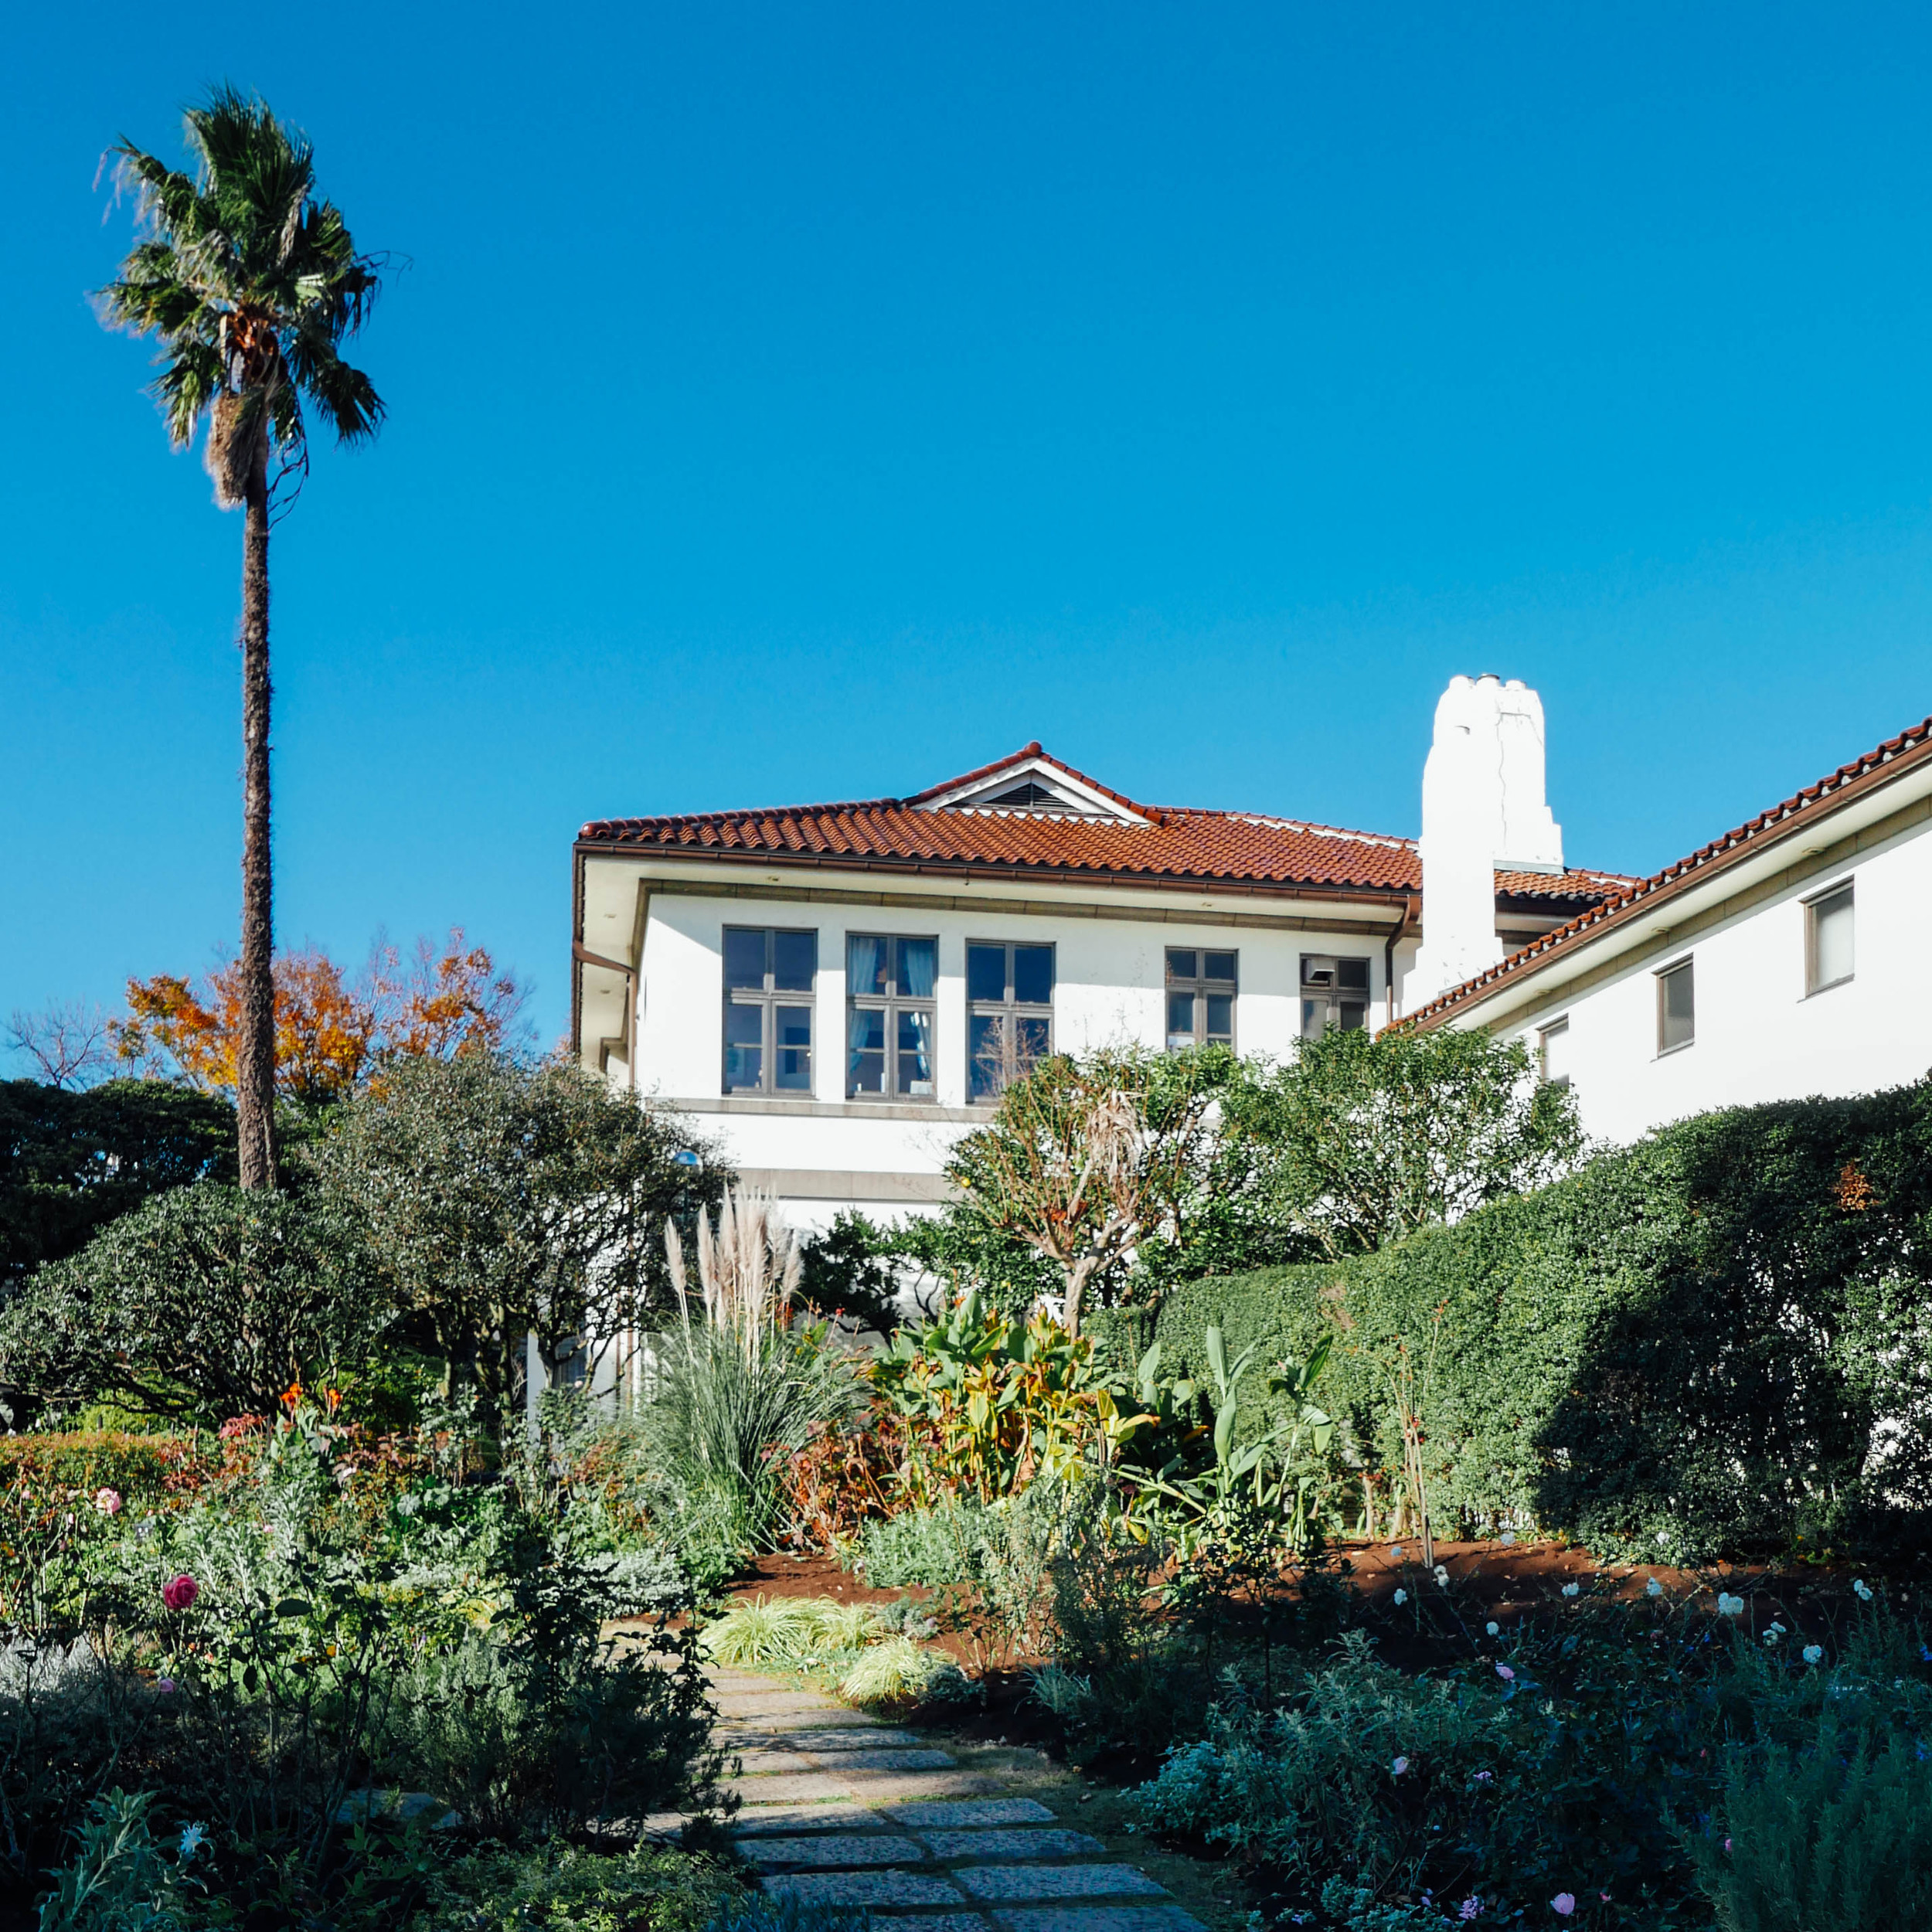 Palms and Spanish-style homes - feels like I'm back in California!